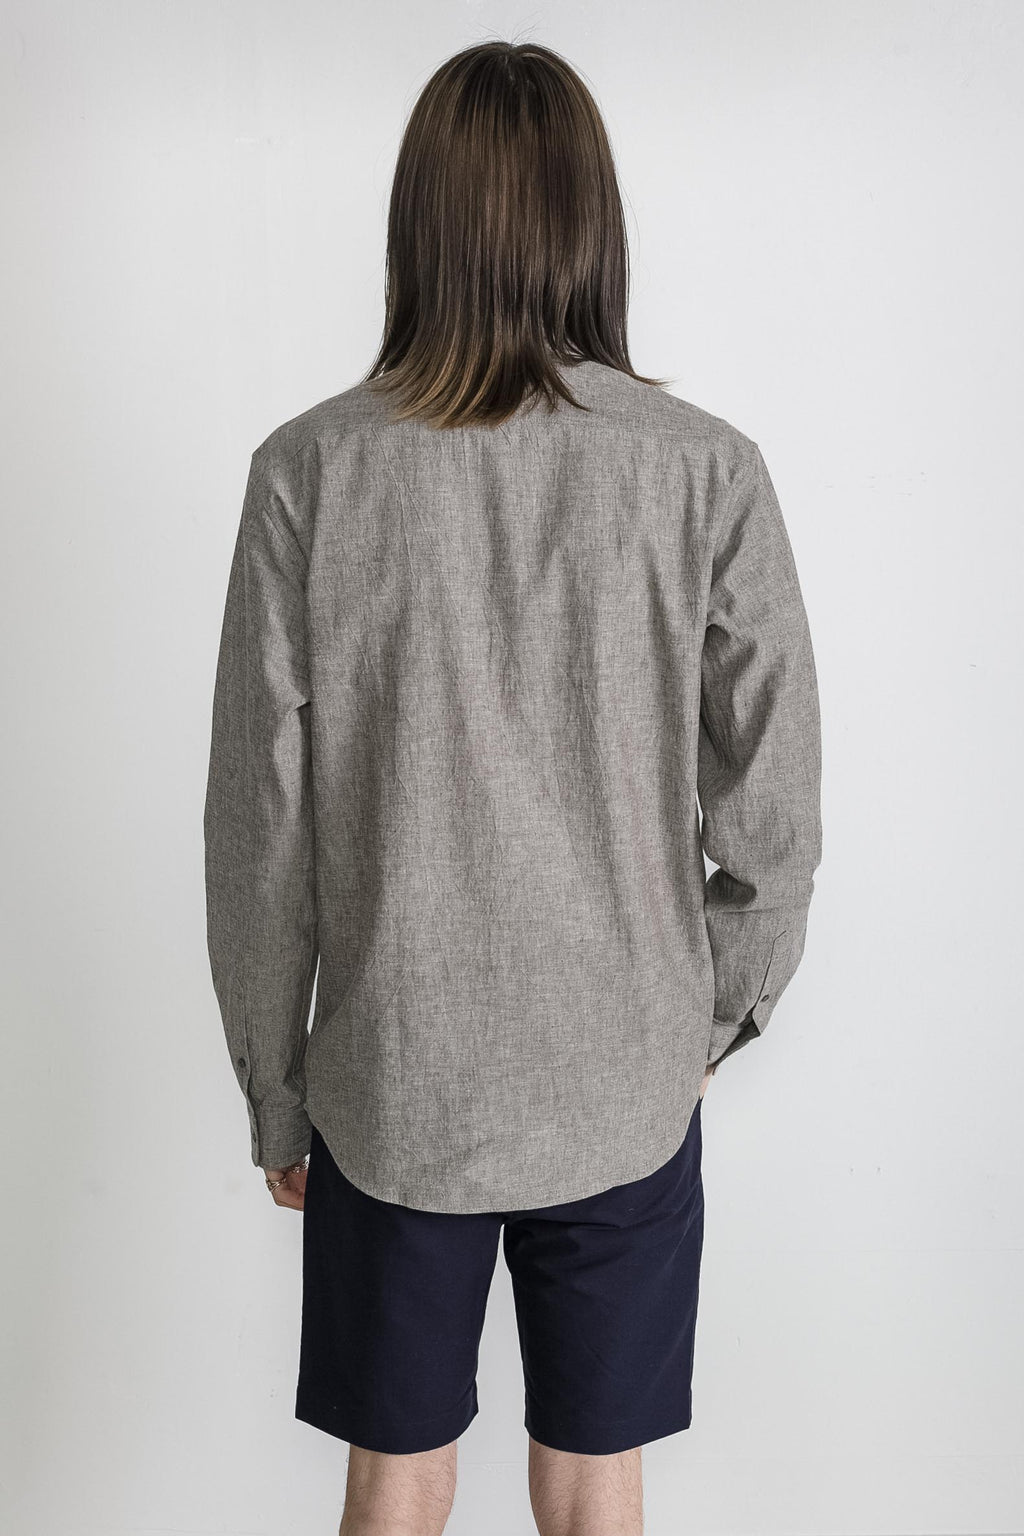 Japanese Dyed Canvas in Grey 004